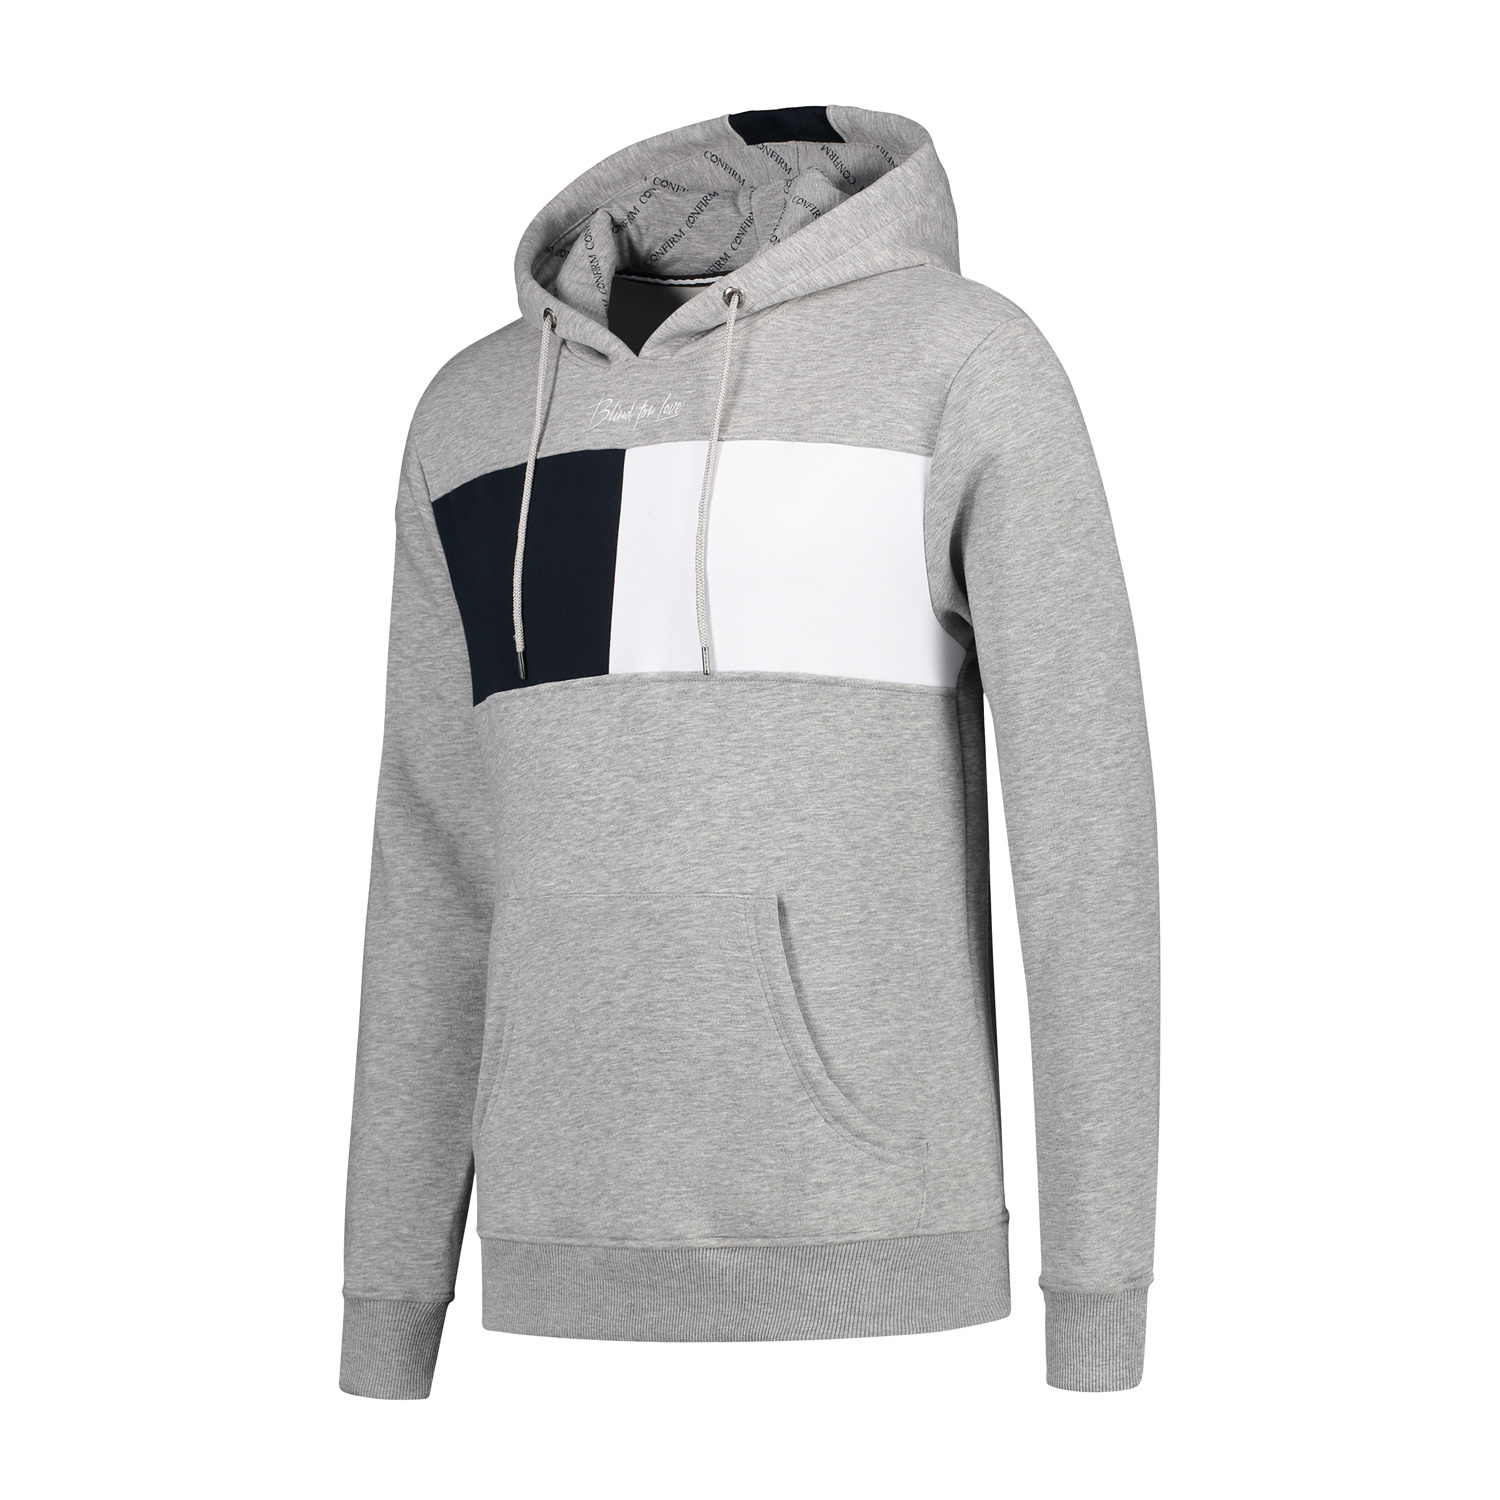 Confirm hoodie blind for love - grey-2